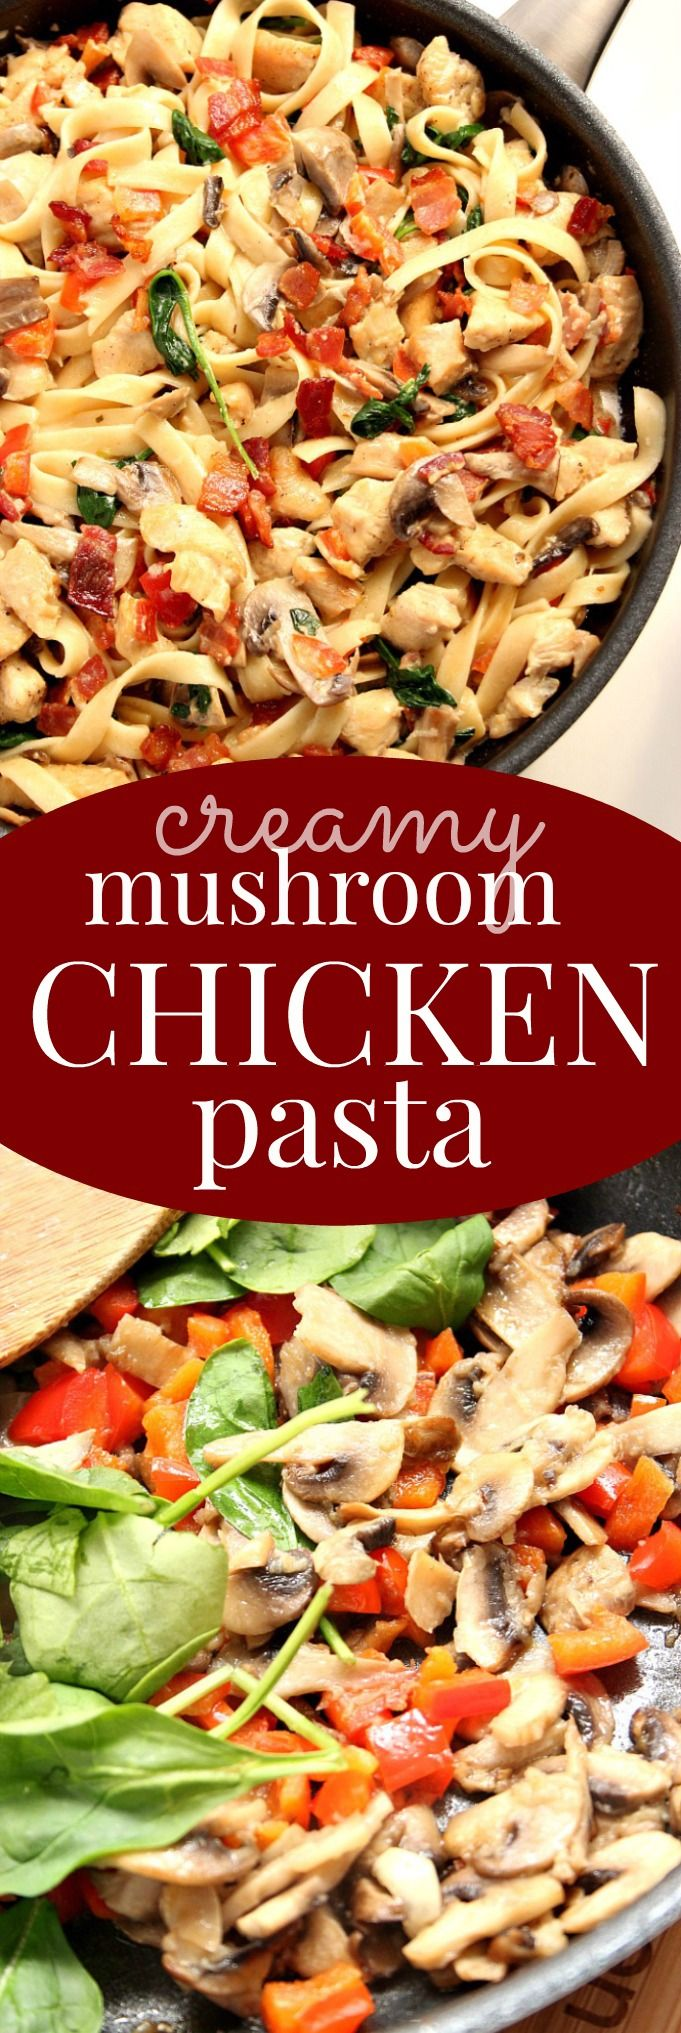 Creamy Mushroom Chicken Pasta Recipe - restaurant style pasta dish made in 30-minutes! Bacon, chicken, mushrooms, red pepper and spinach with fettuccine and tossed in garlic cream sauce. Pure comfort food for even a busy weeknight!